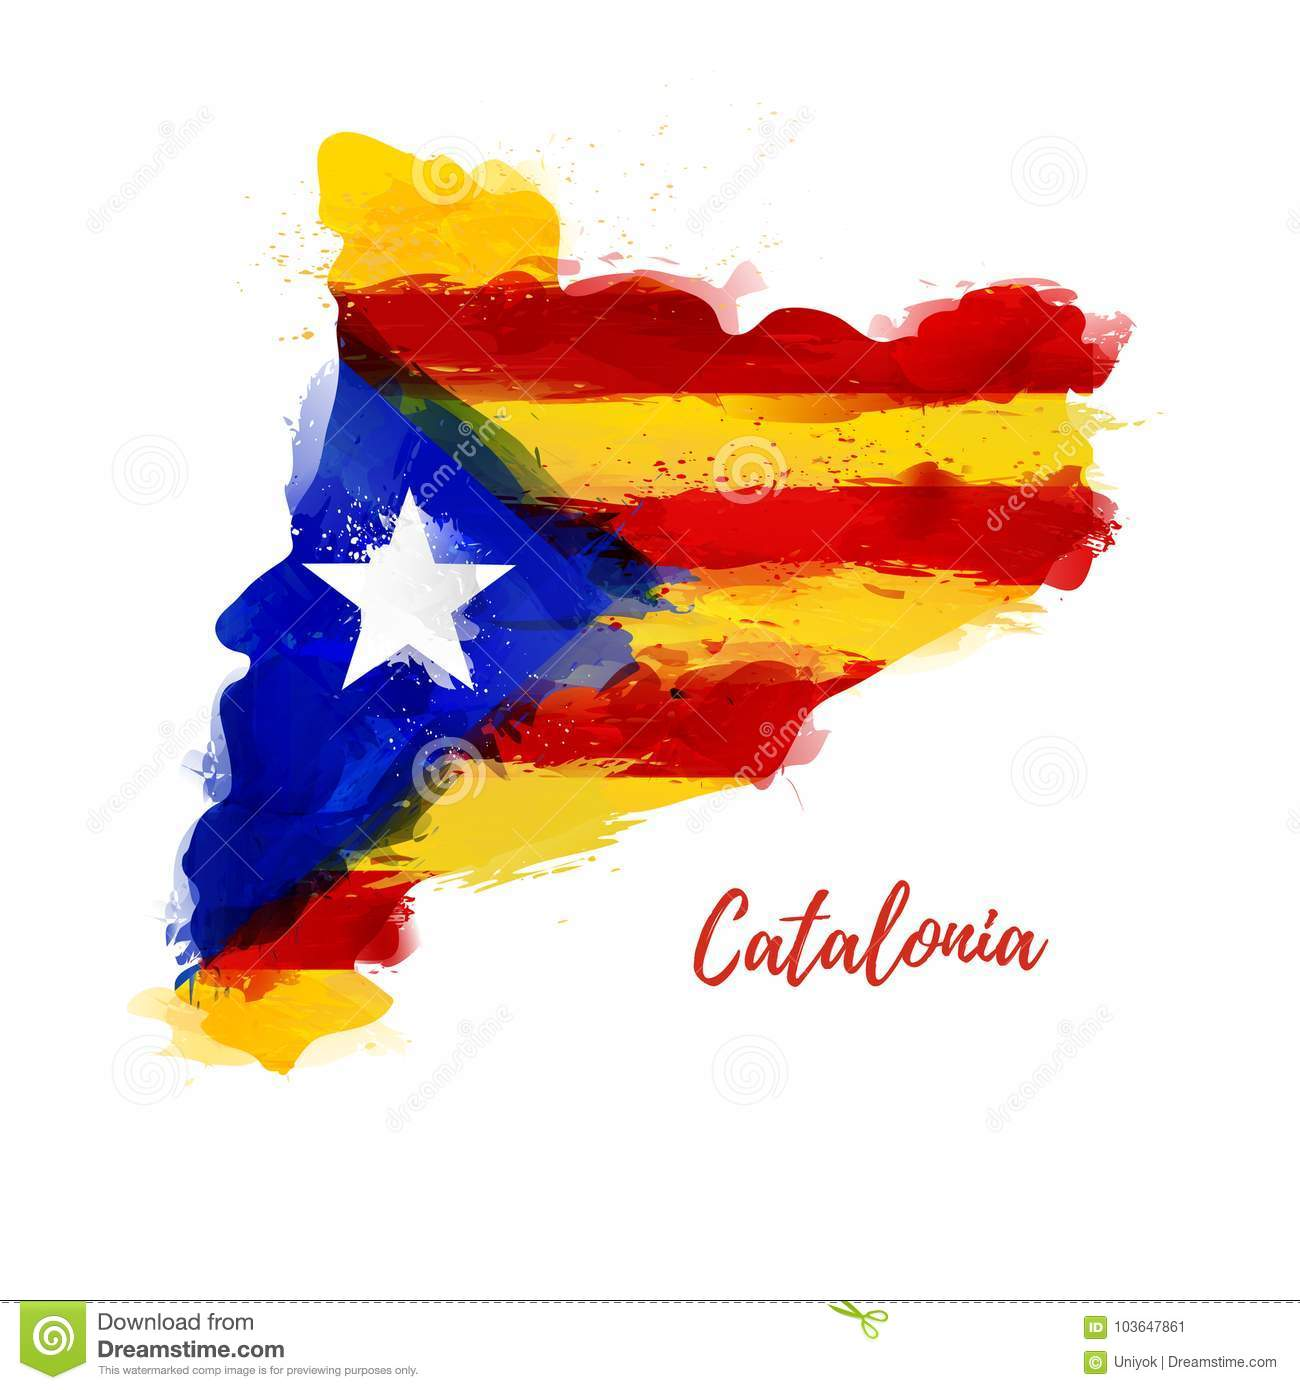 on catalonia map